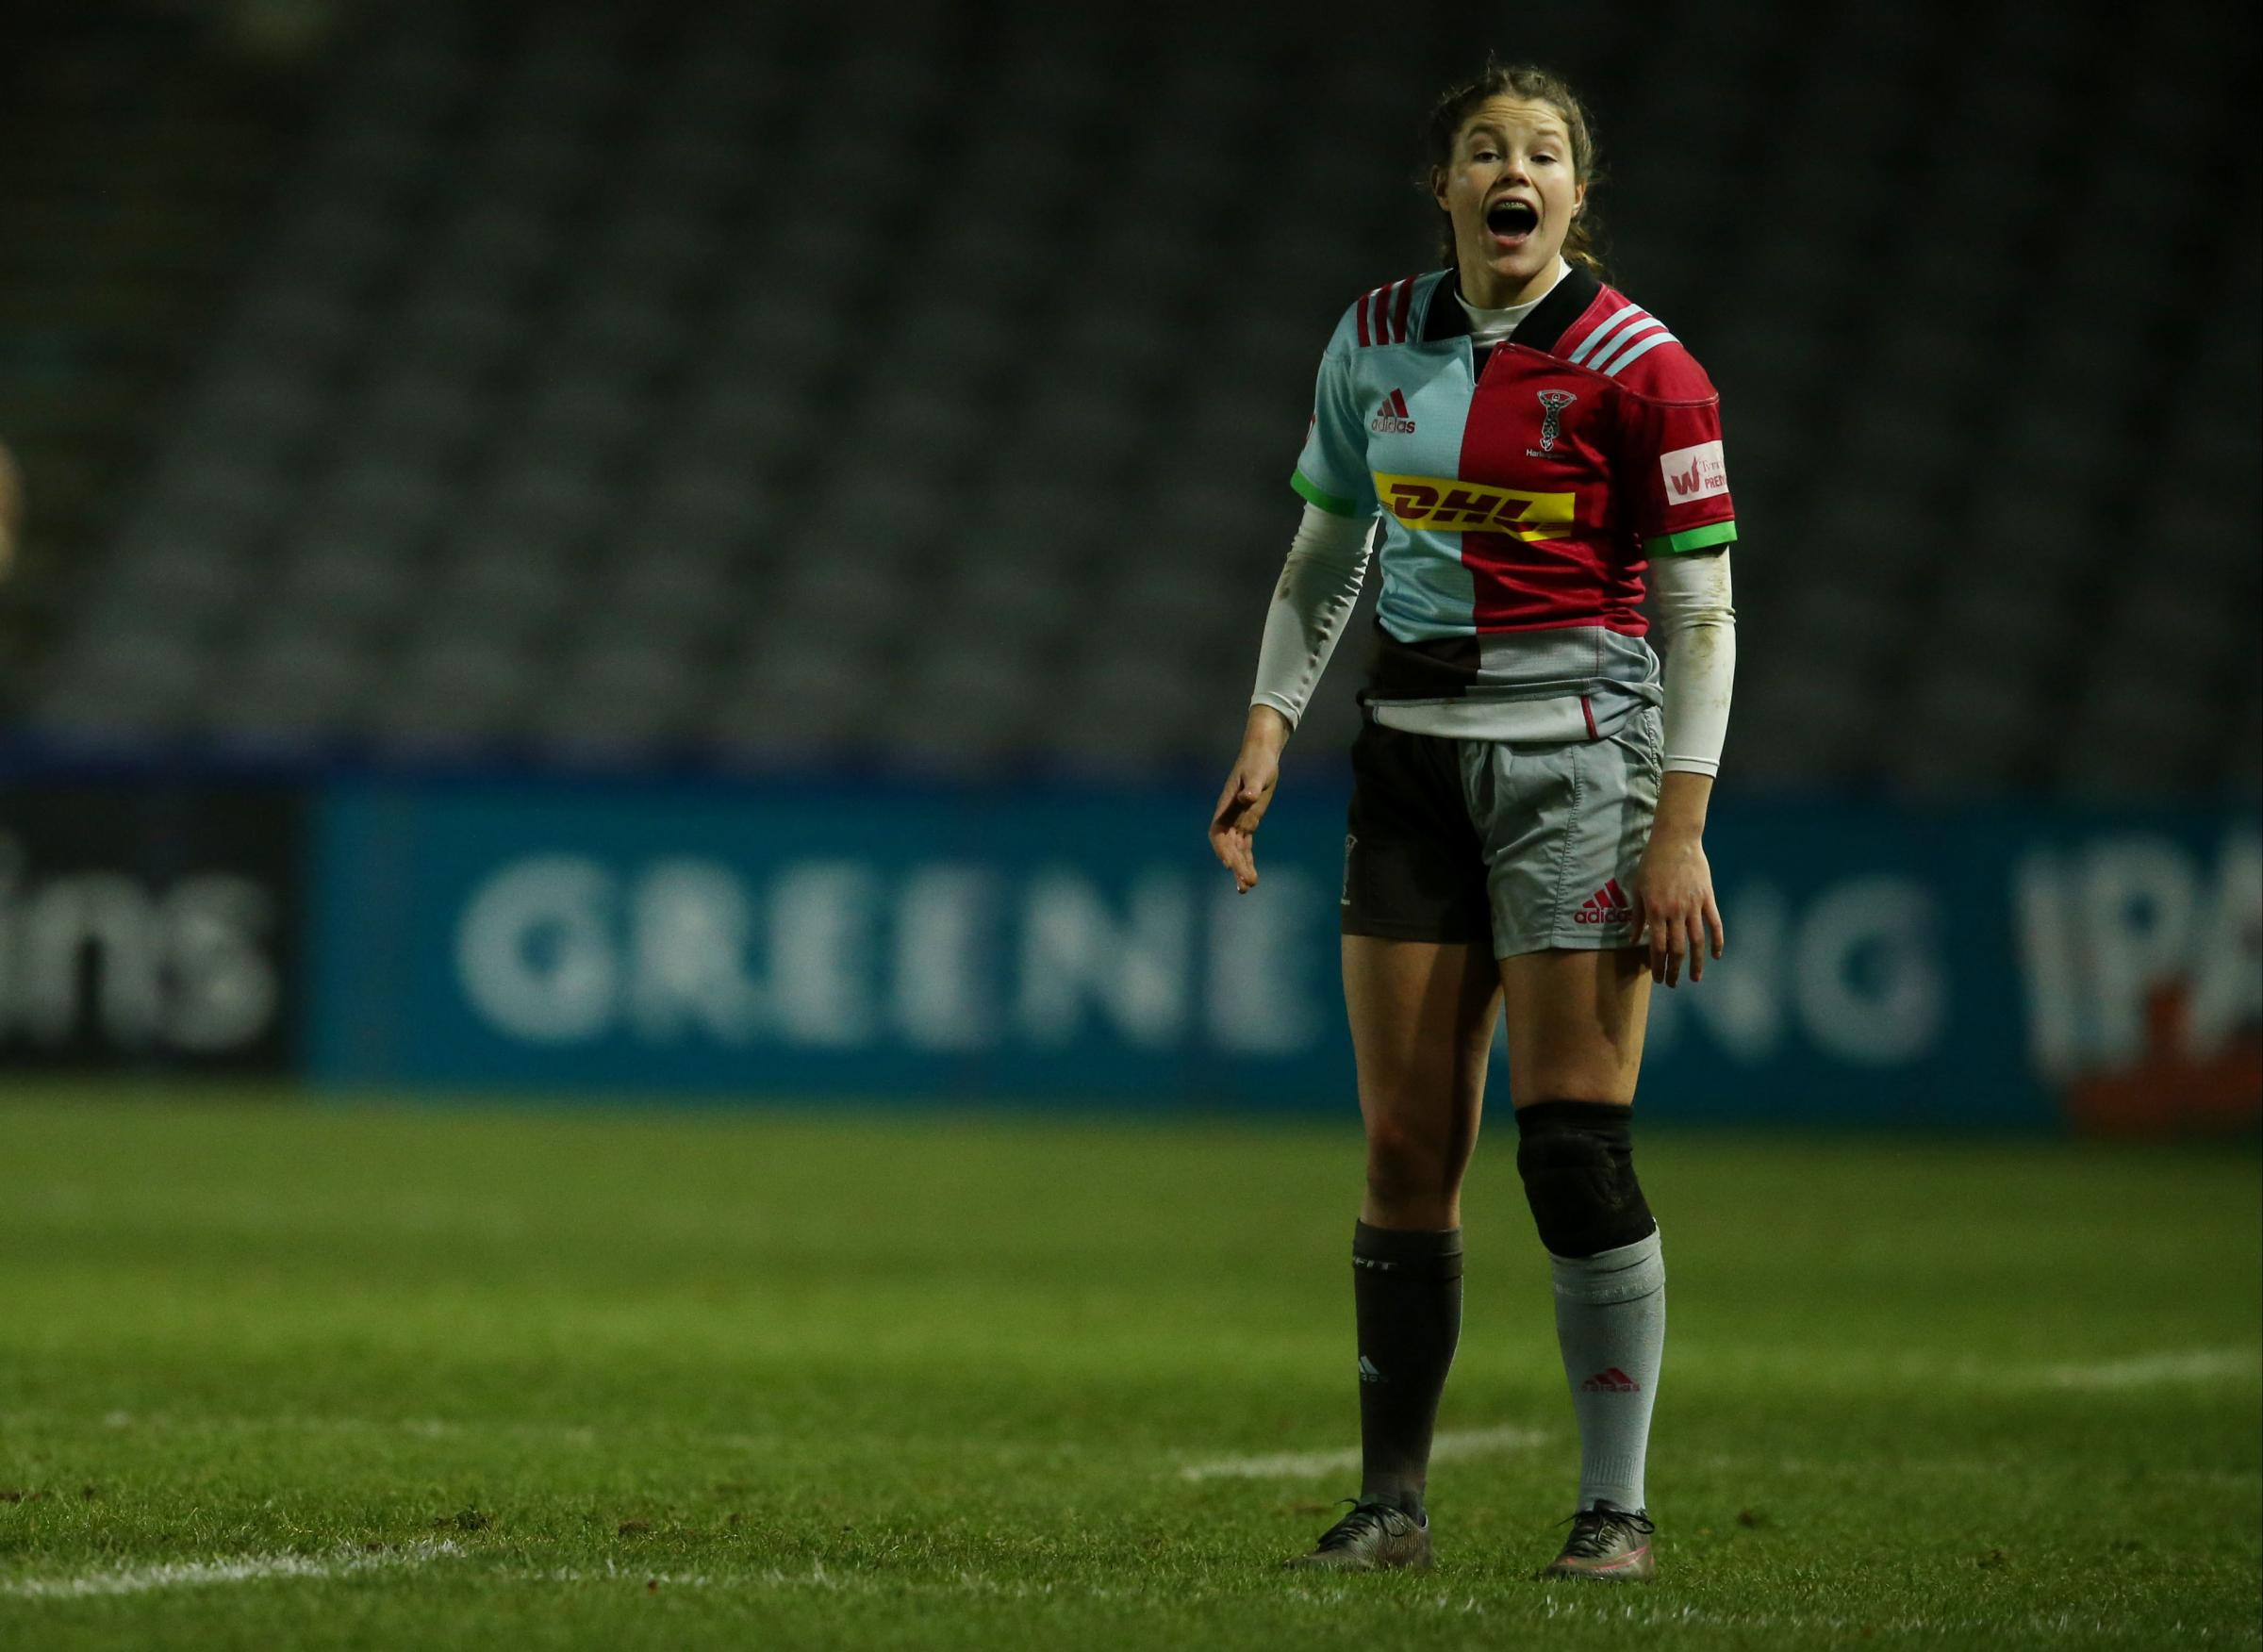 Harlequins Ladies' Jess Breach  (Photo credit: Paul Harding/PA Wire)